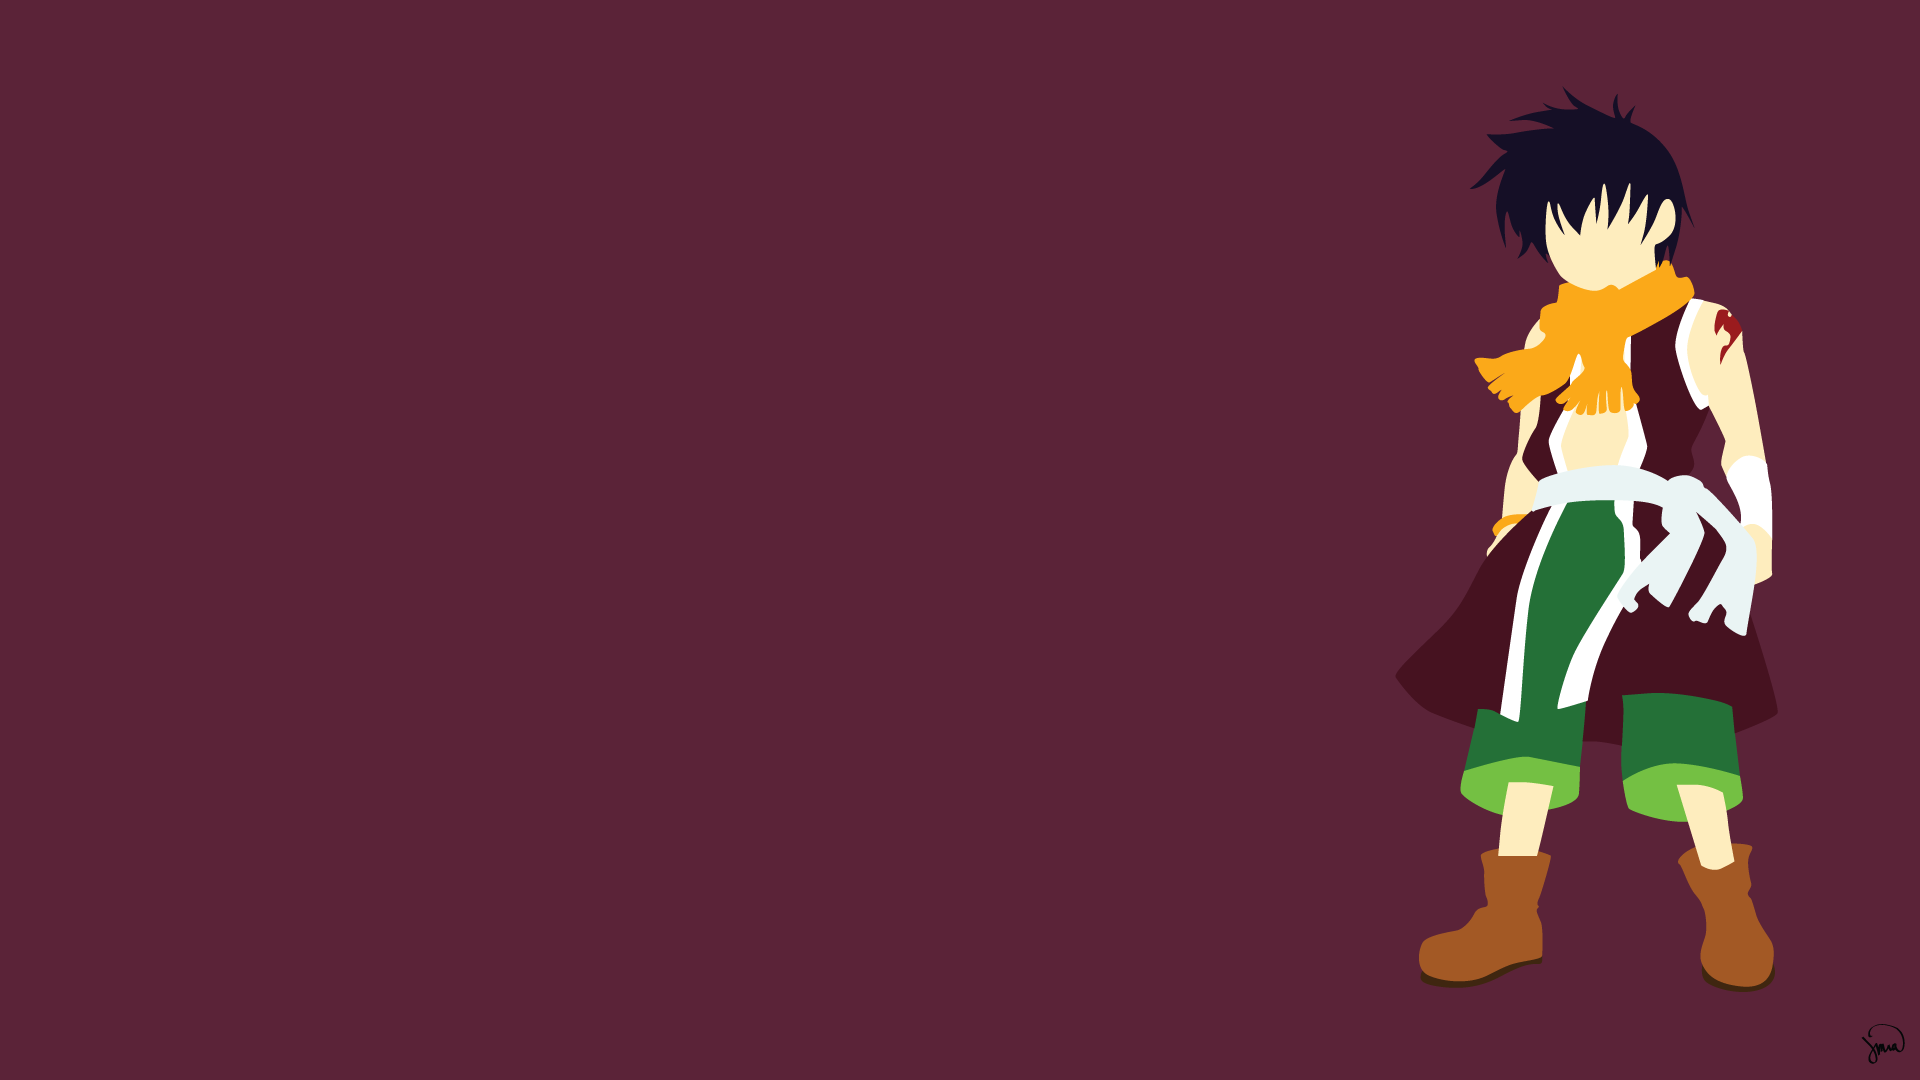 fairy tail minimalist wallpaper - photo #15